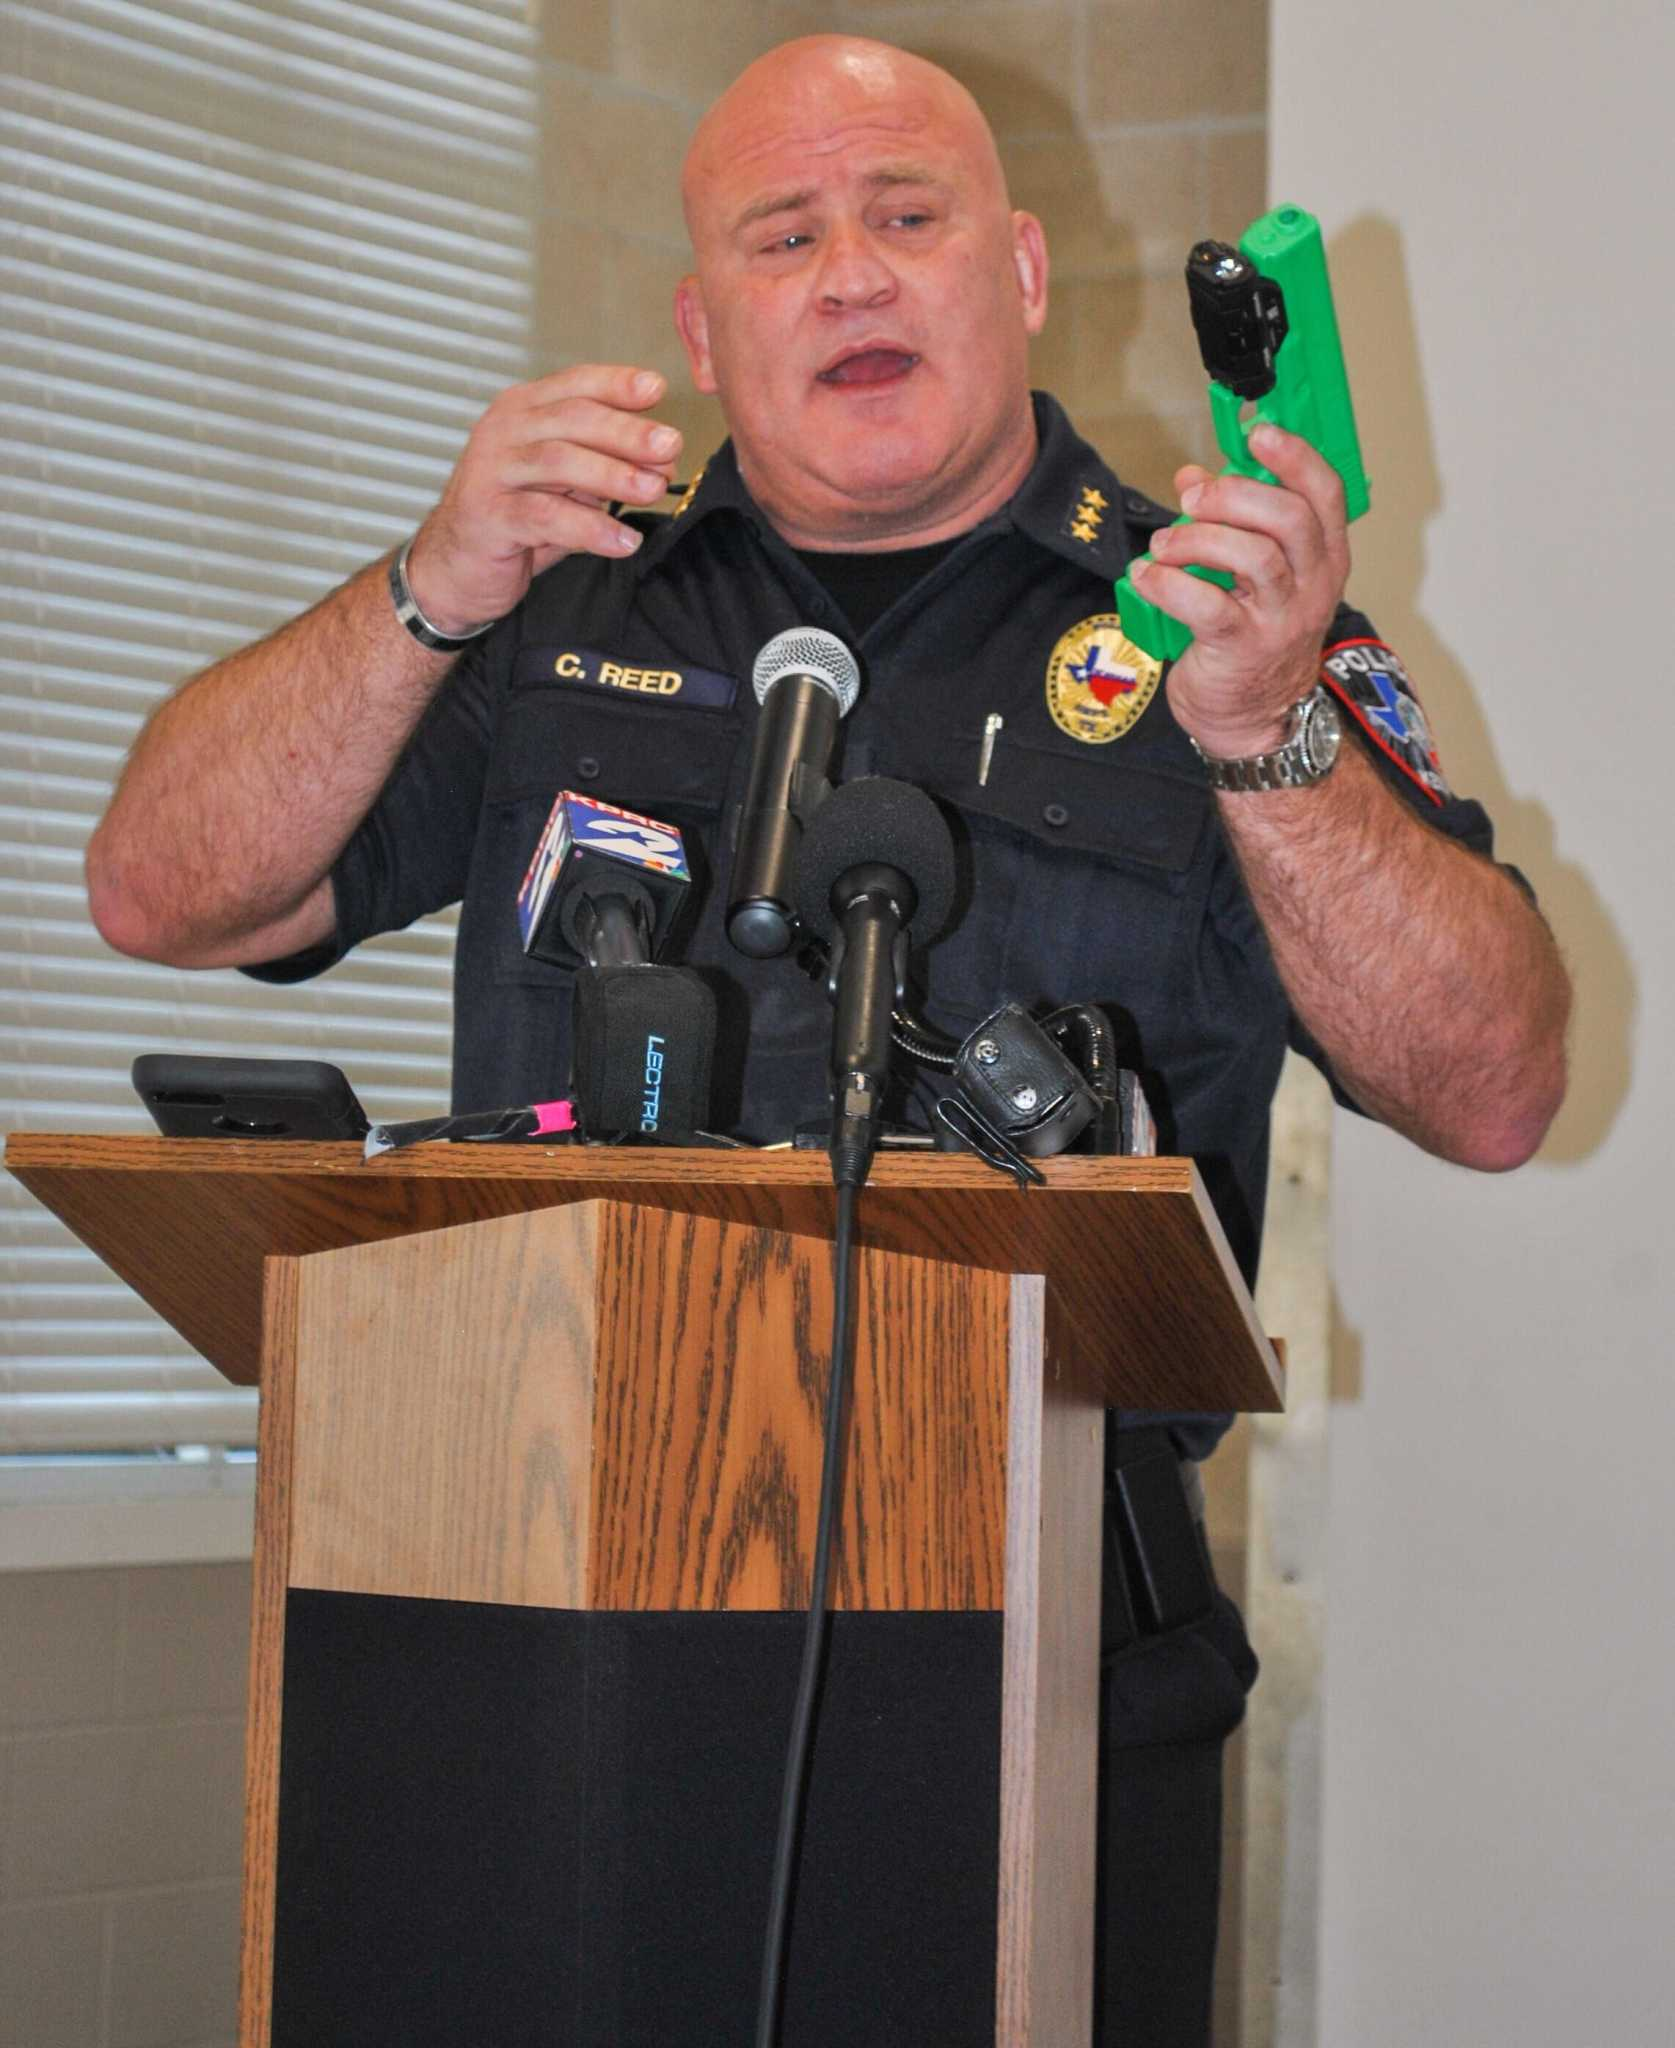 Kemah Police: Gun-mounted Camera Could Boost Transparency